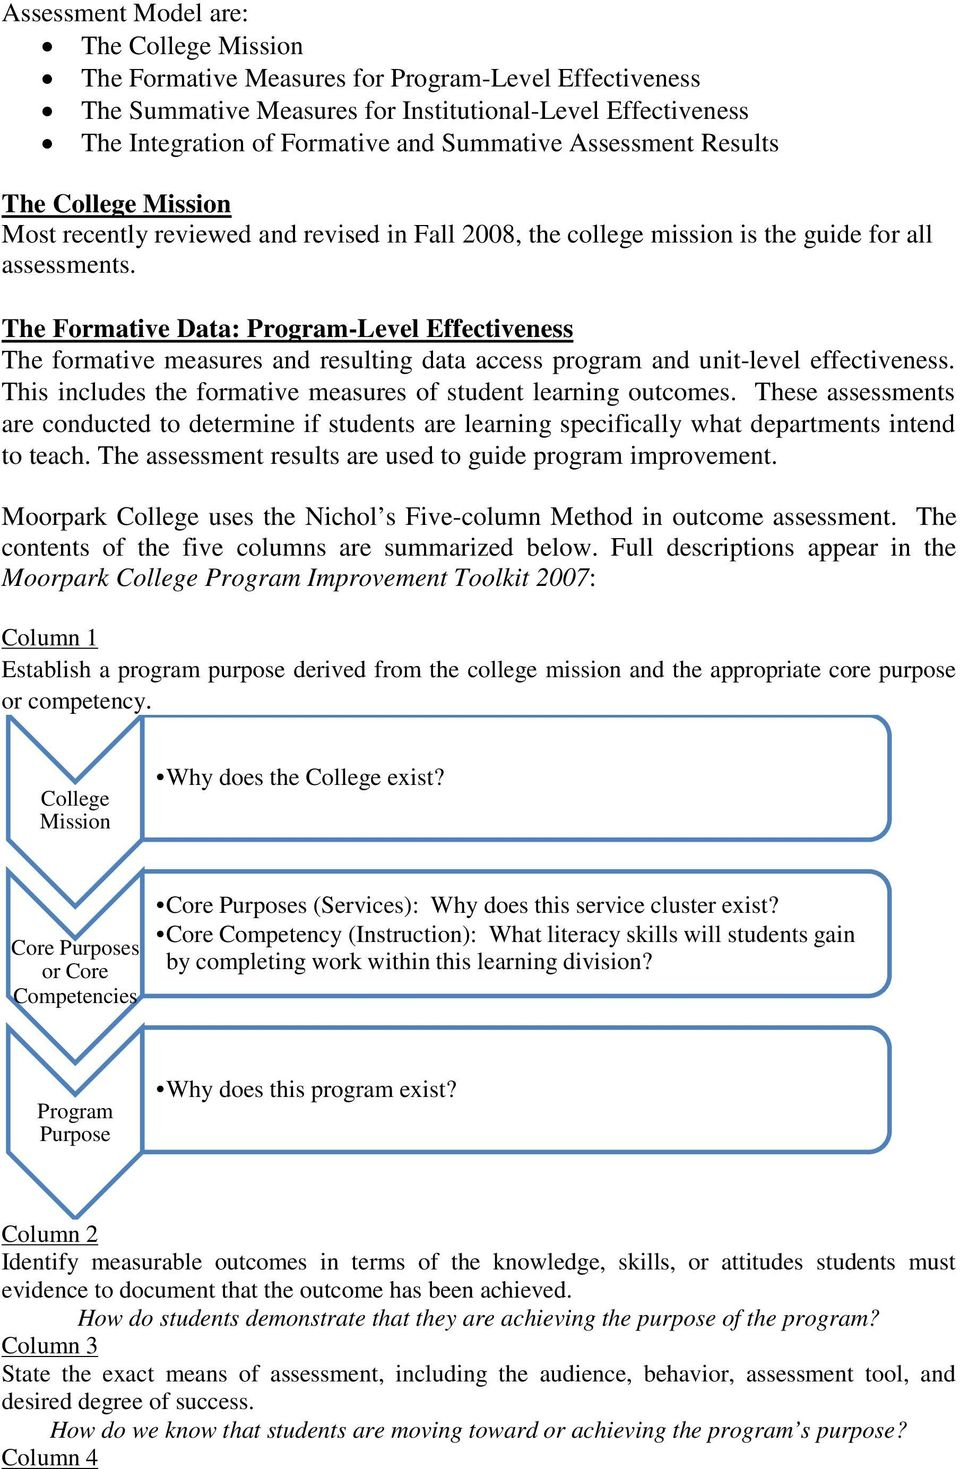 The Formative Data: Program-Level Effectiveness The formative measures and resulting data access program and unit-level effectiveness.